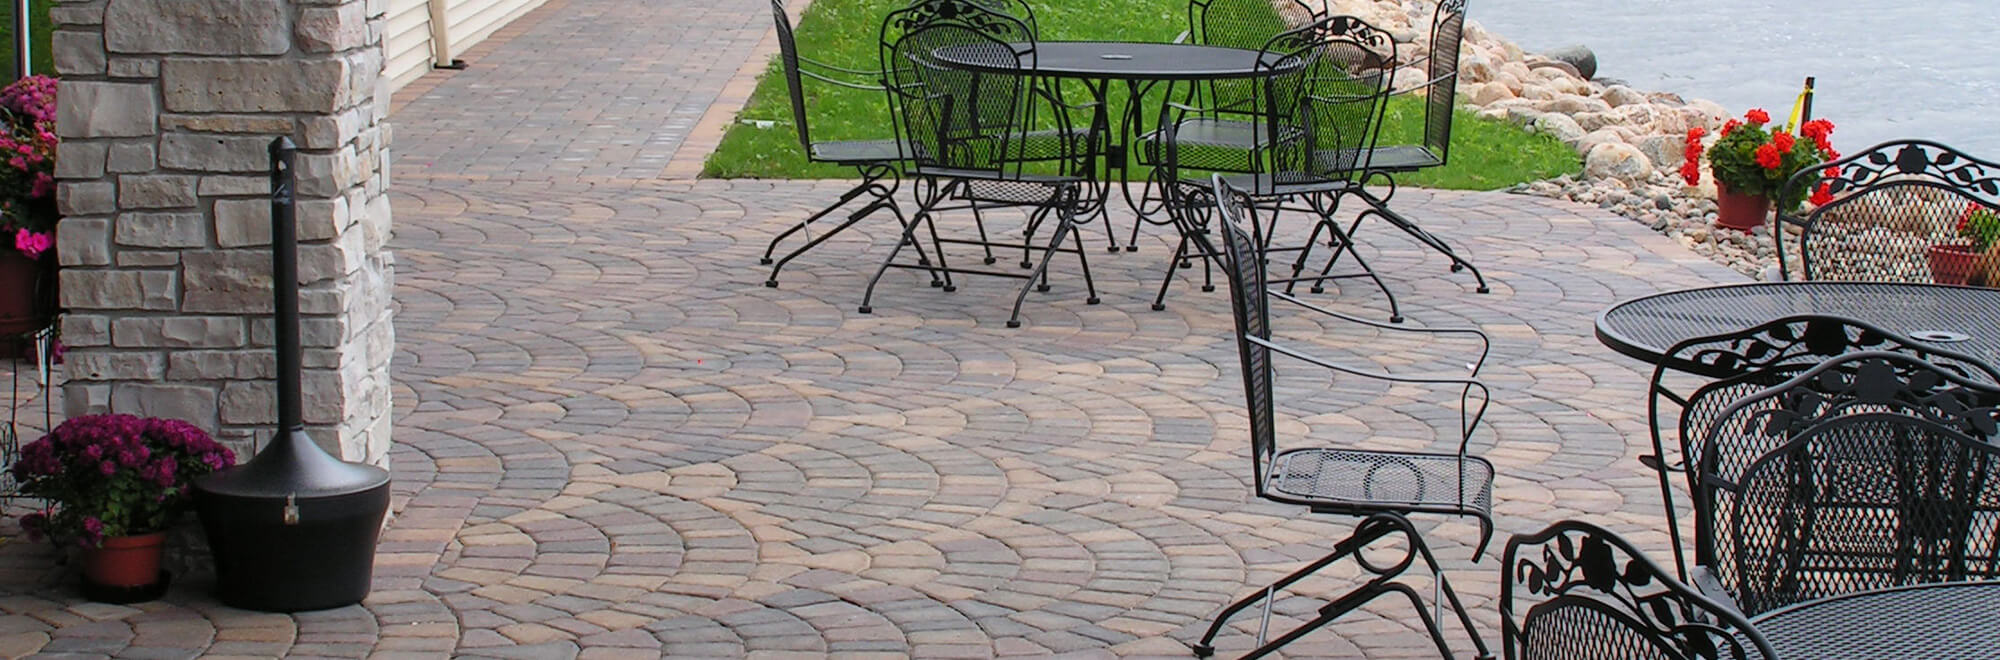 Commercial paver patio installed in an arc pattern